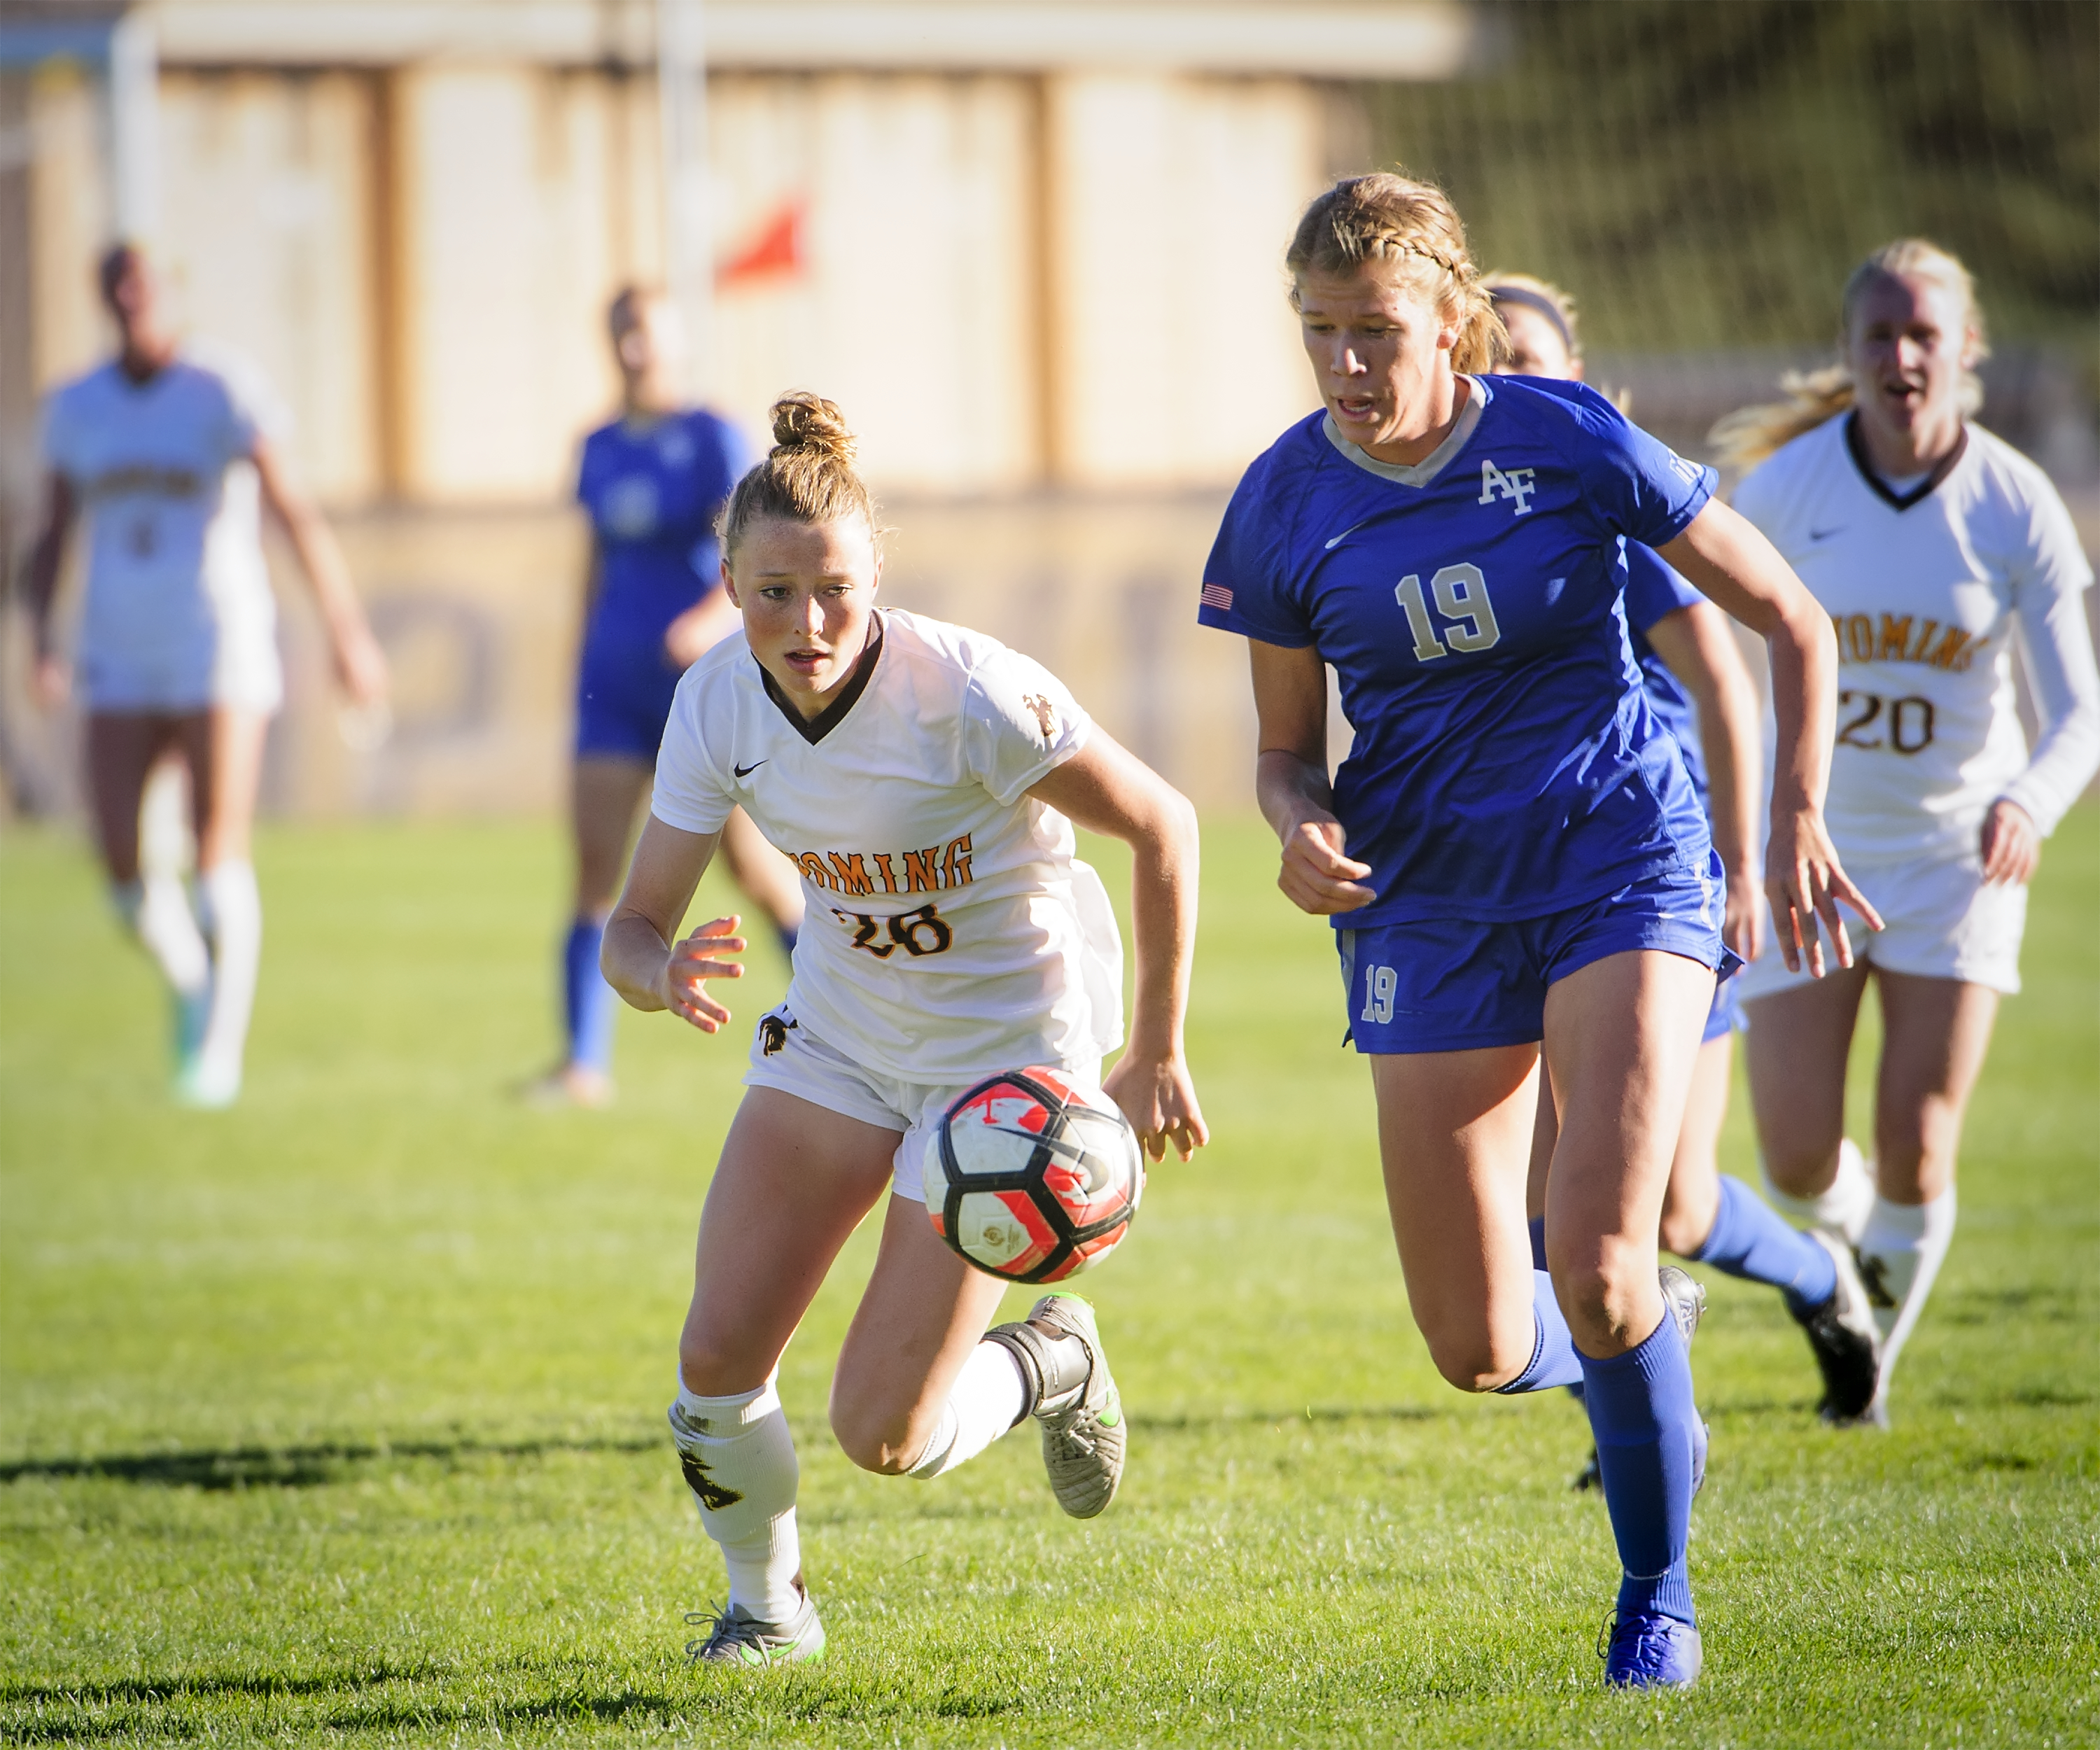 Wyoming's Charlotte Hume, left, battles for a soccer ball against the United States Air Force Academy.